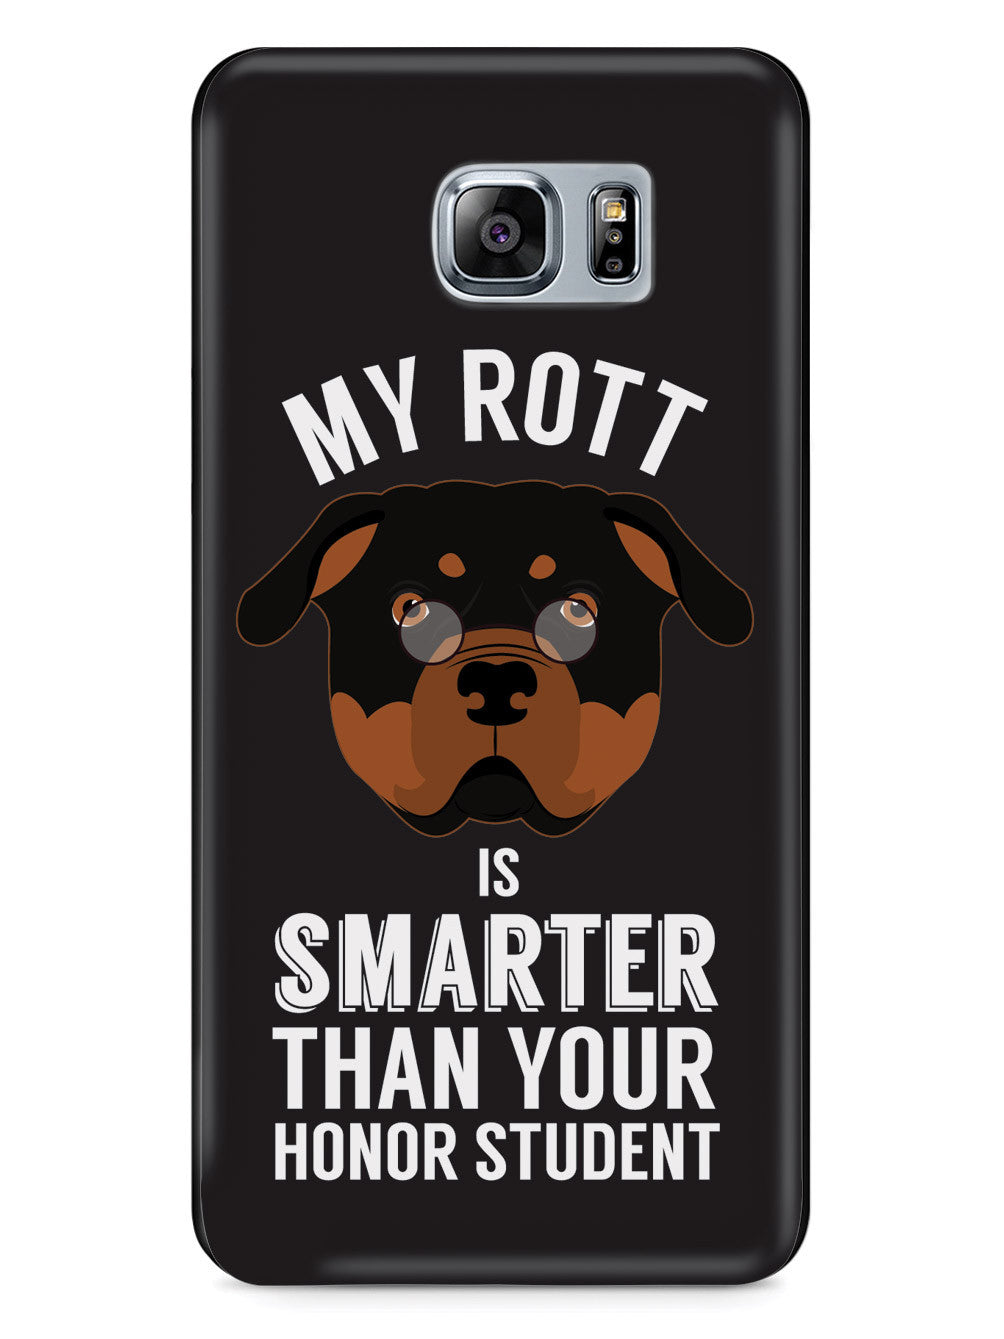 Smarter Than Your Honor Student - Rott Case